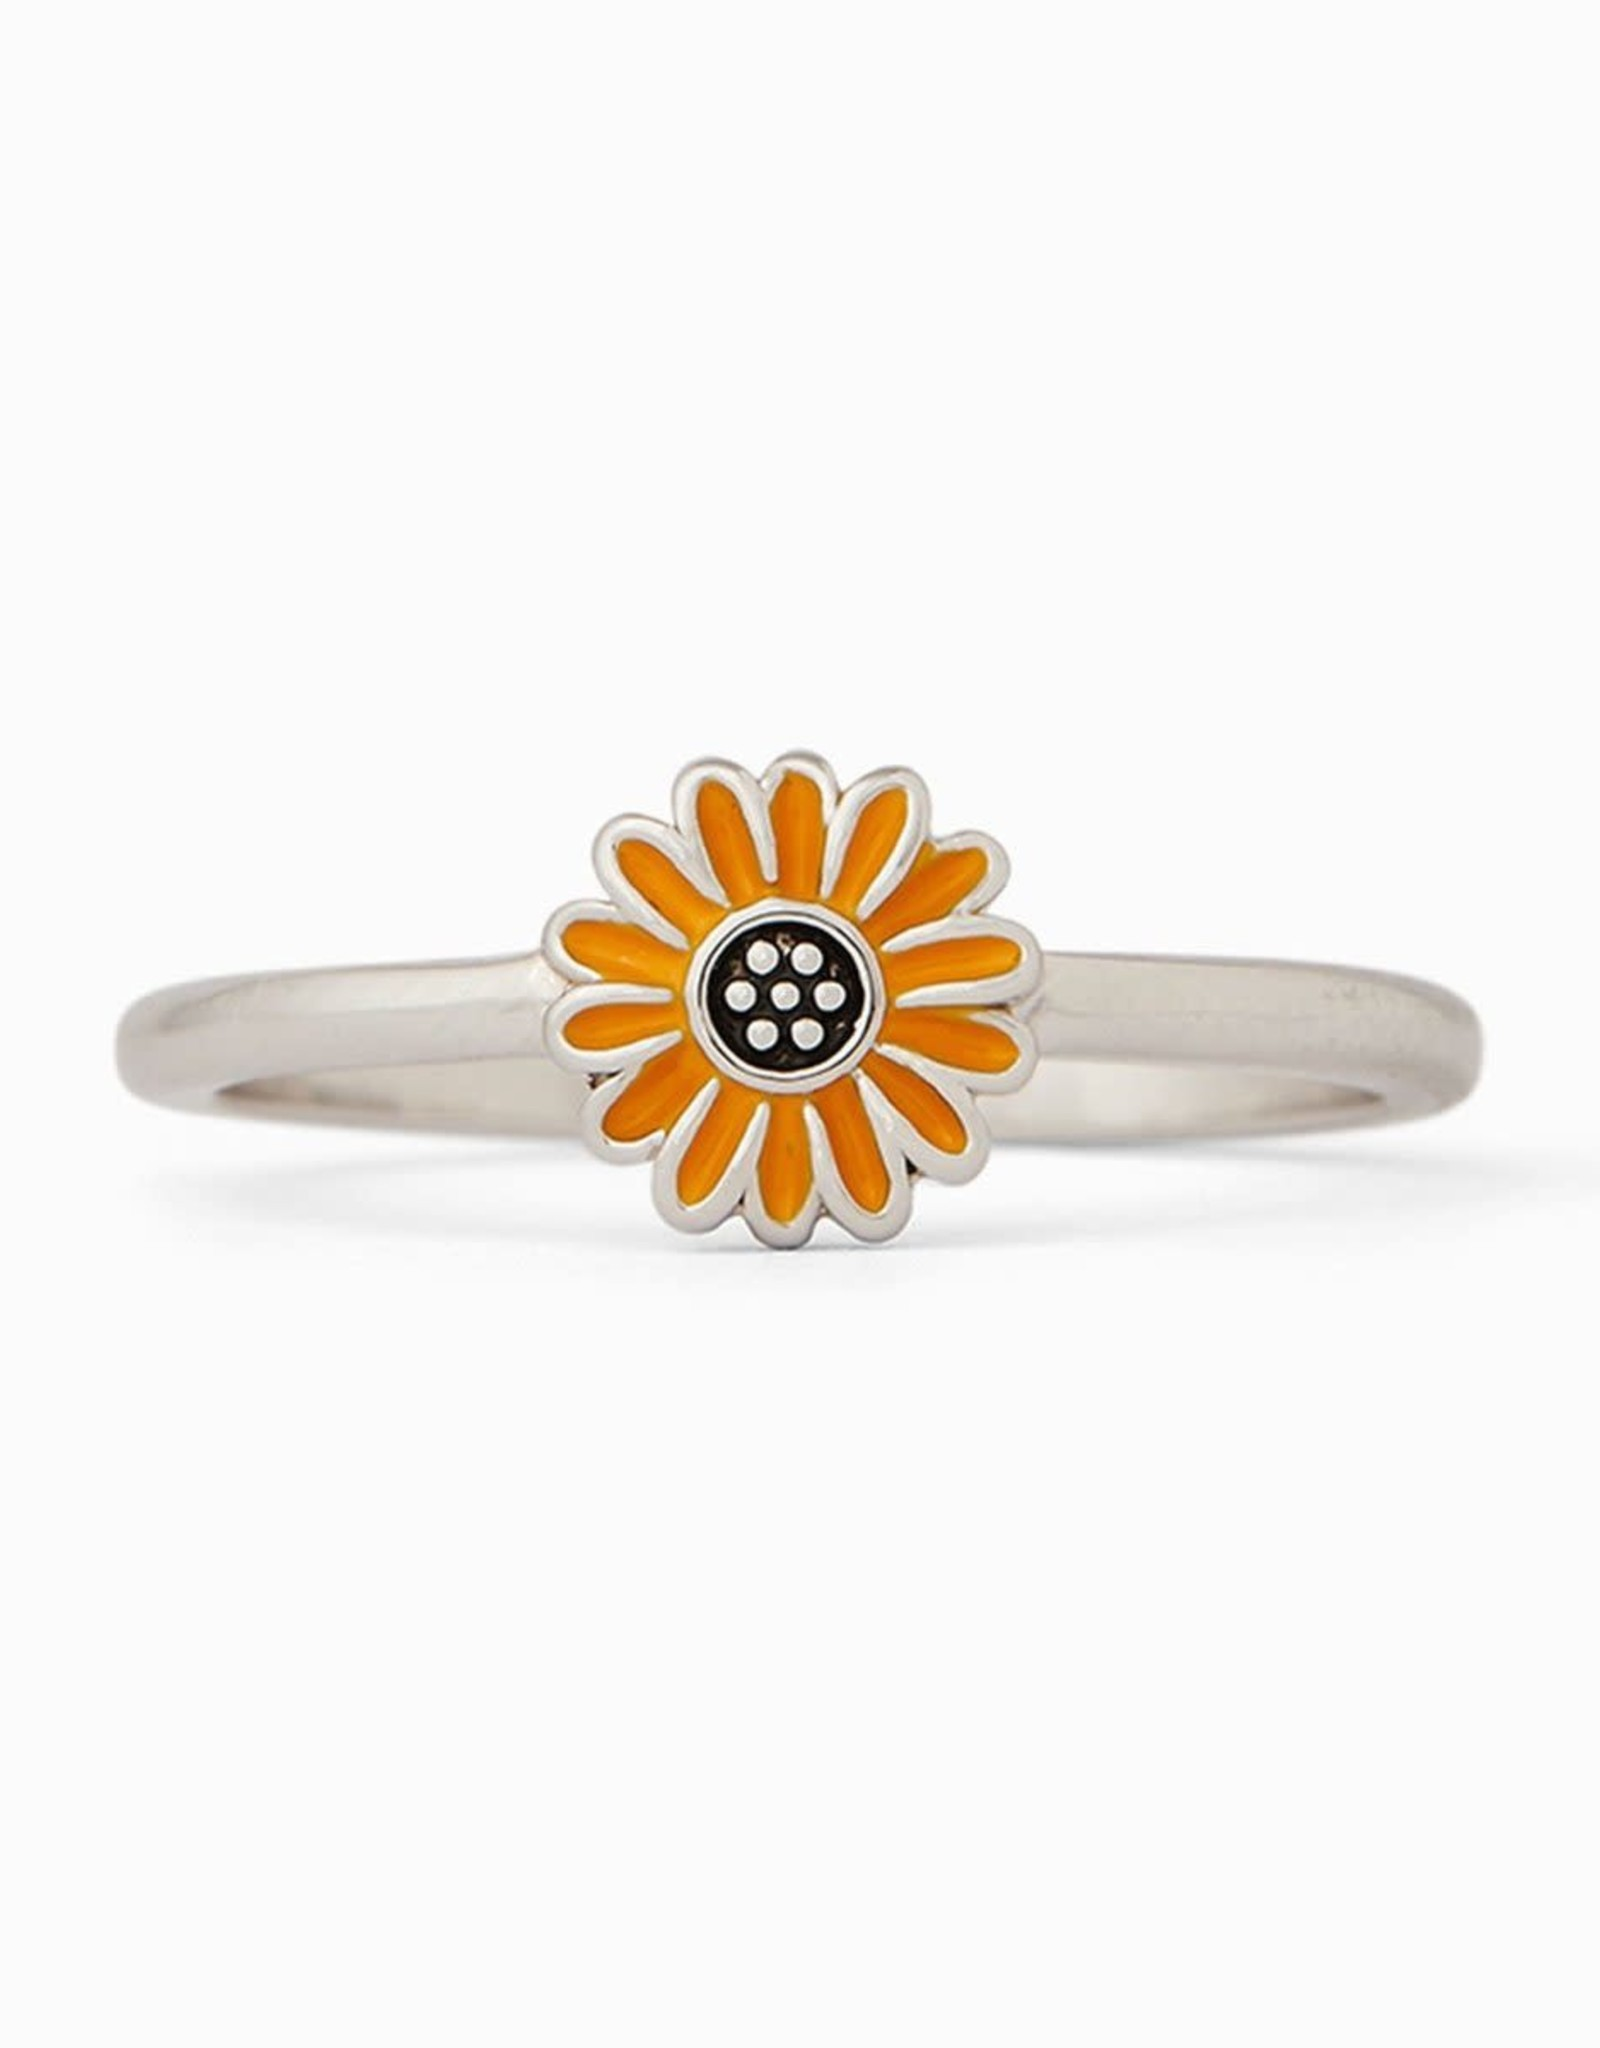 Sunflower Ring, Pura Vida